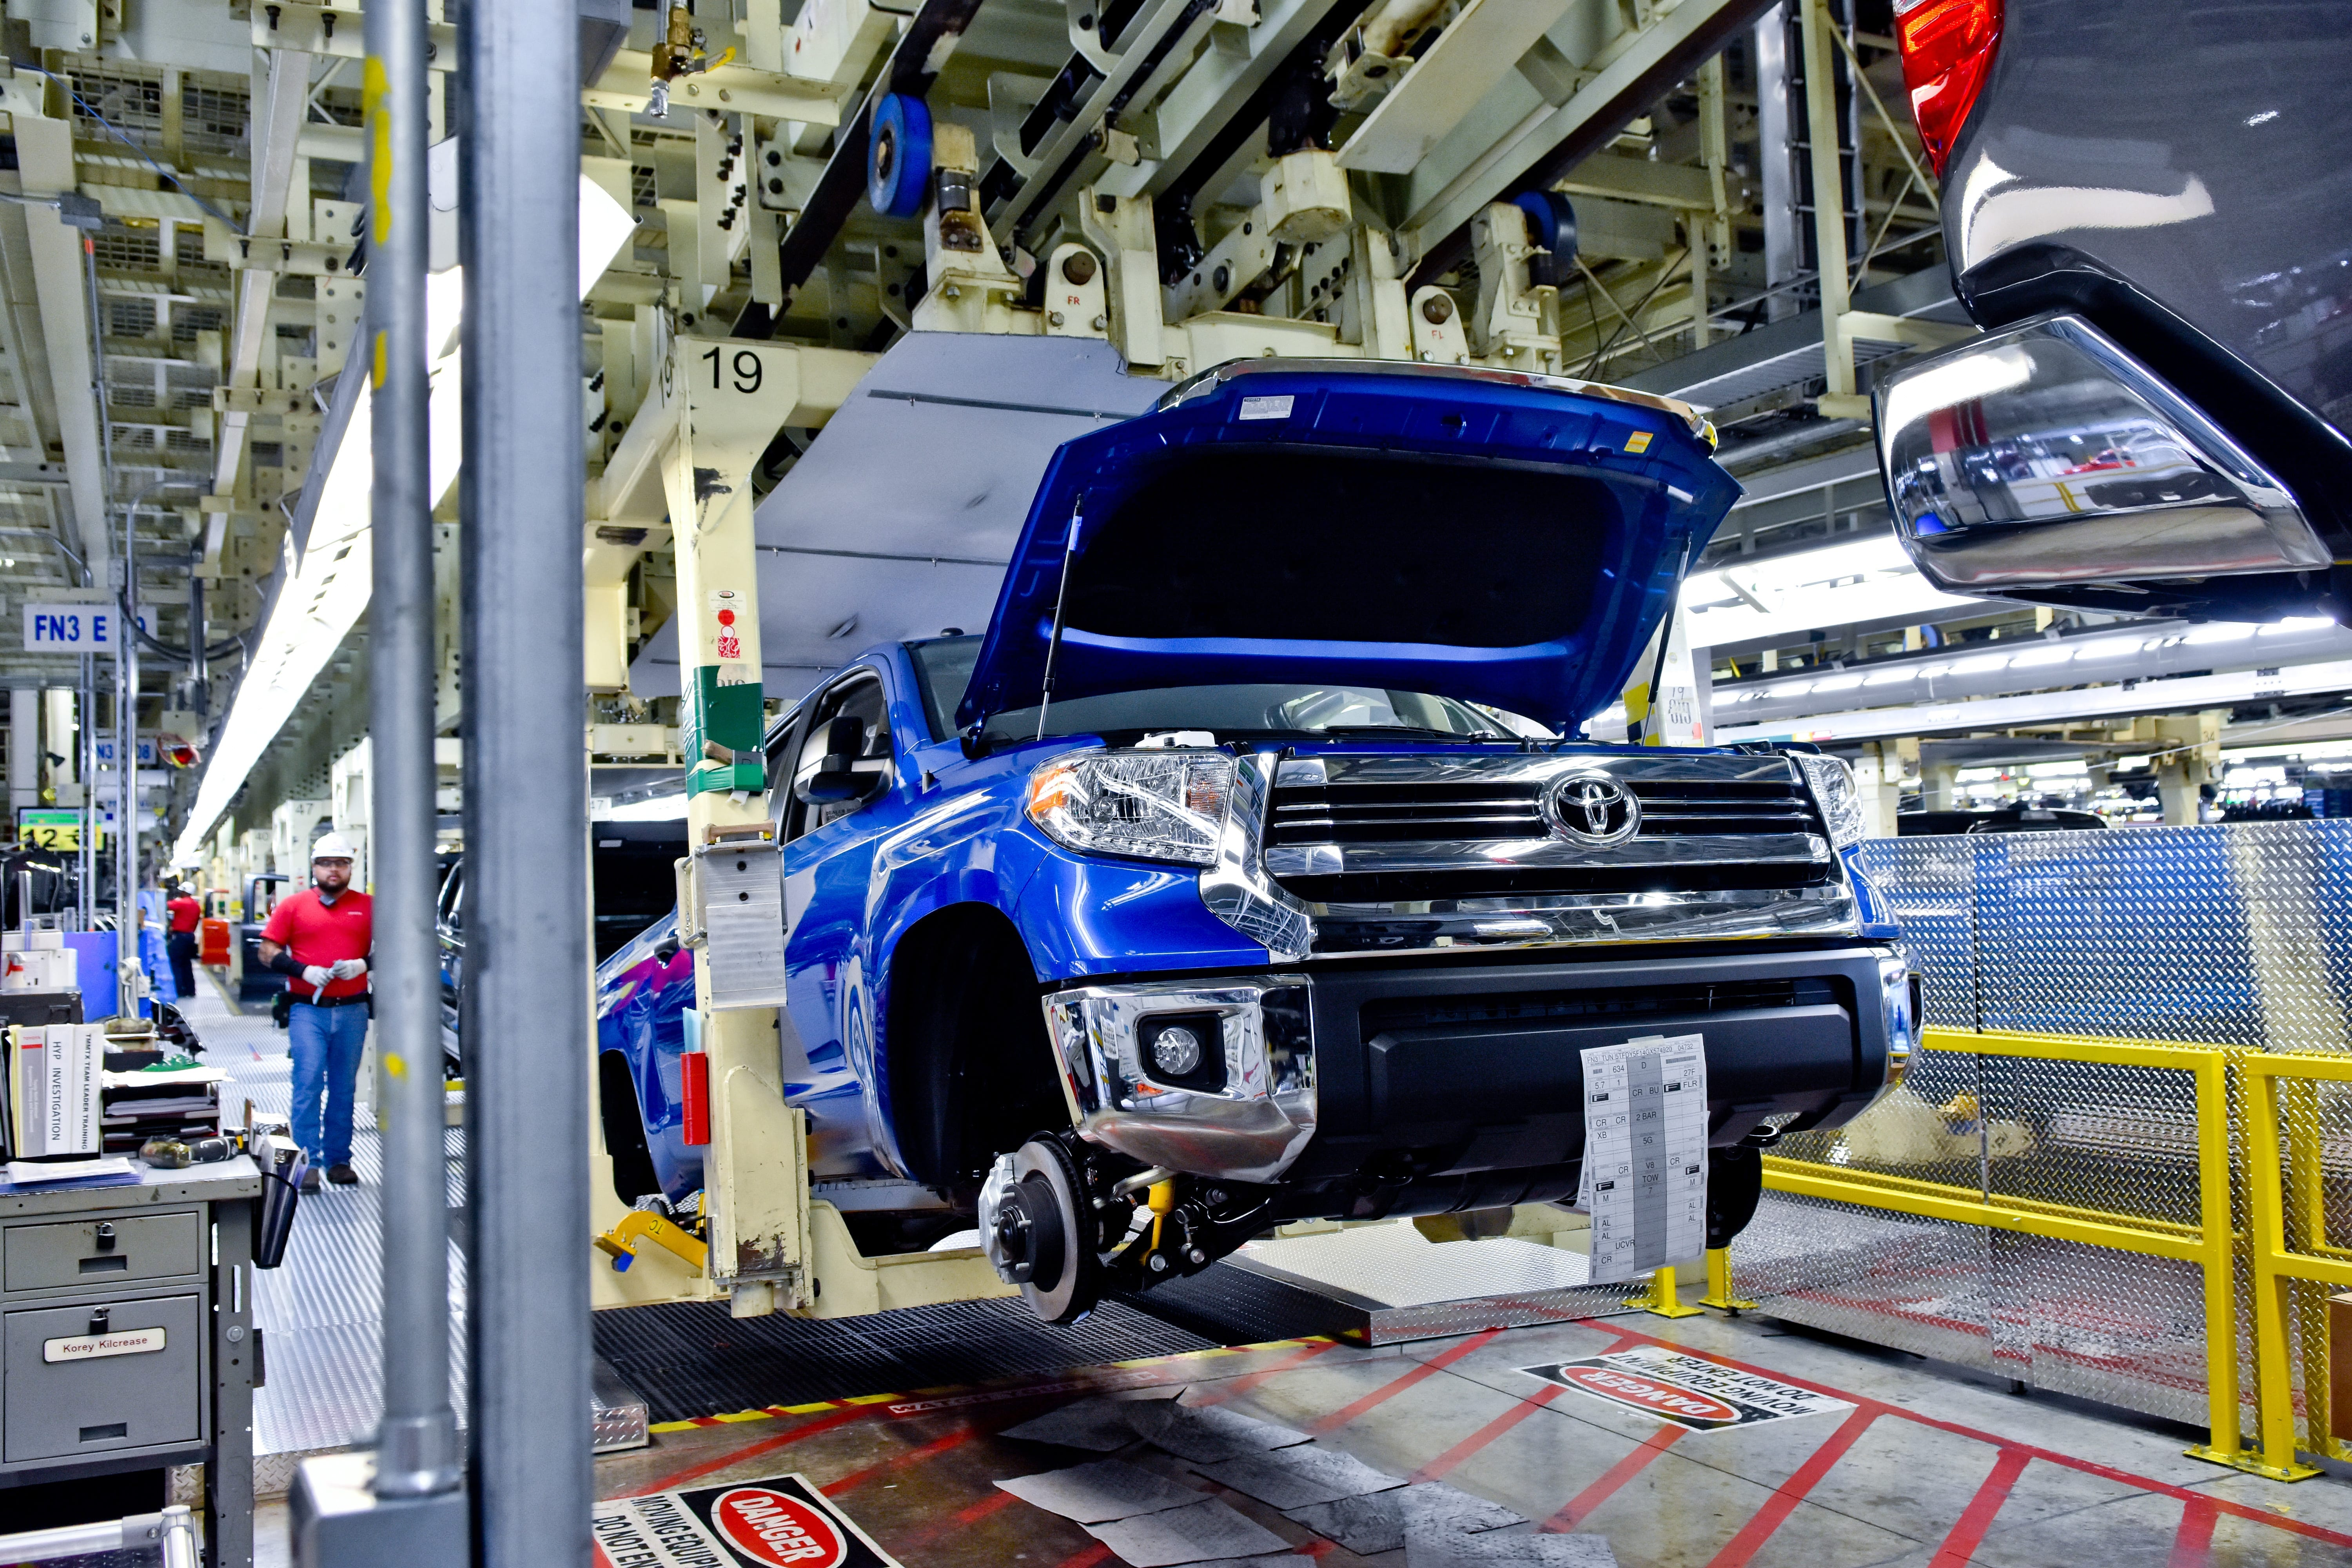 371865 Toyota Manufacturing Plant San Antonio Texas additionally Suzuki Esteem Engine Isuzu Pup further Toyota Truck Slide Continues But Sa Leaders Still likewise P Hayden Pa tiere Alfred Mann Foundation Gala 1823 20514 further Toyota Locations In The Us. on toyota tundra manufacturing plant